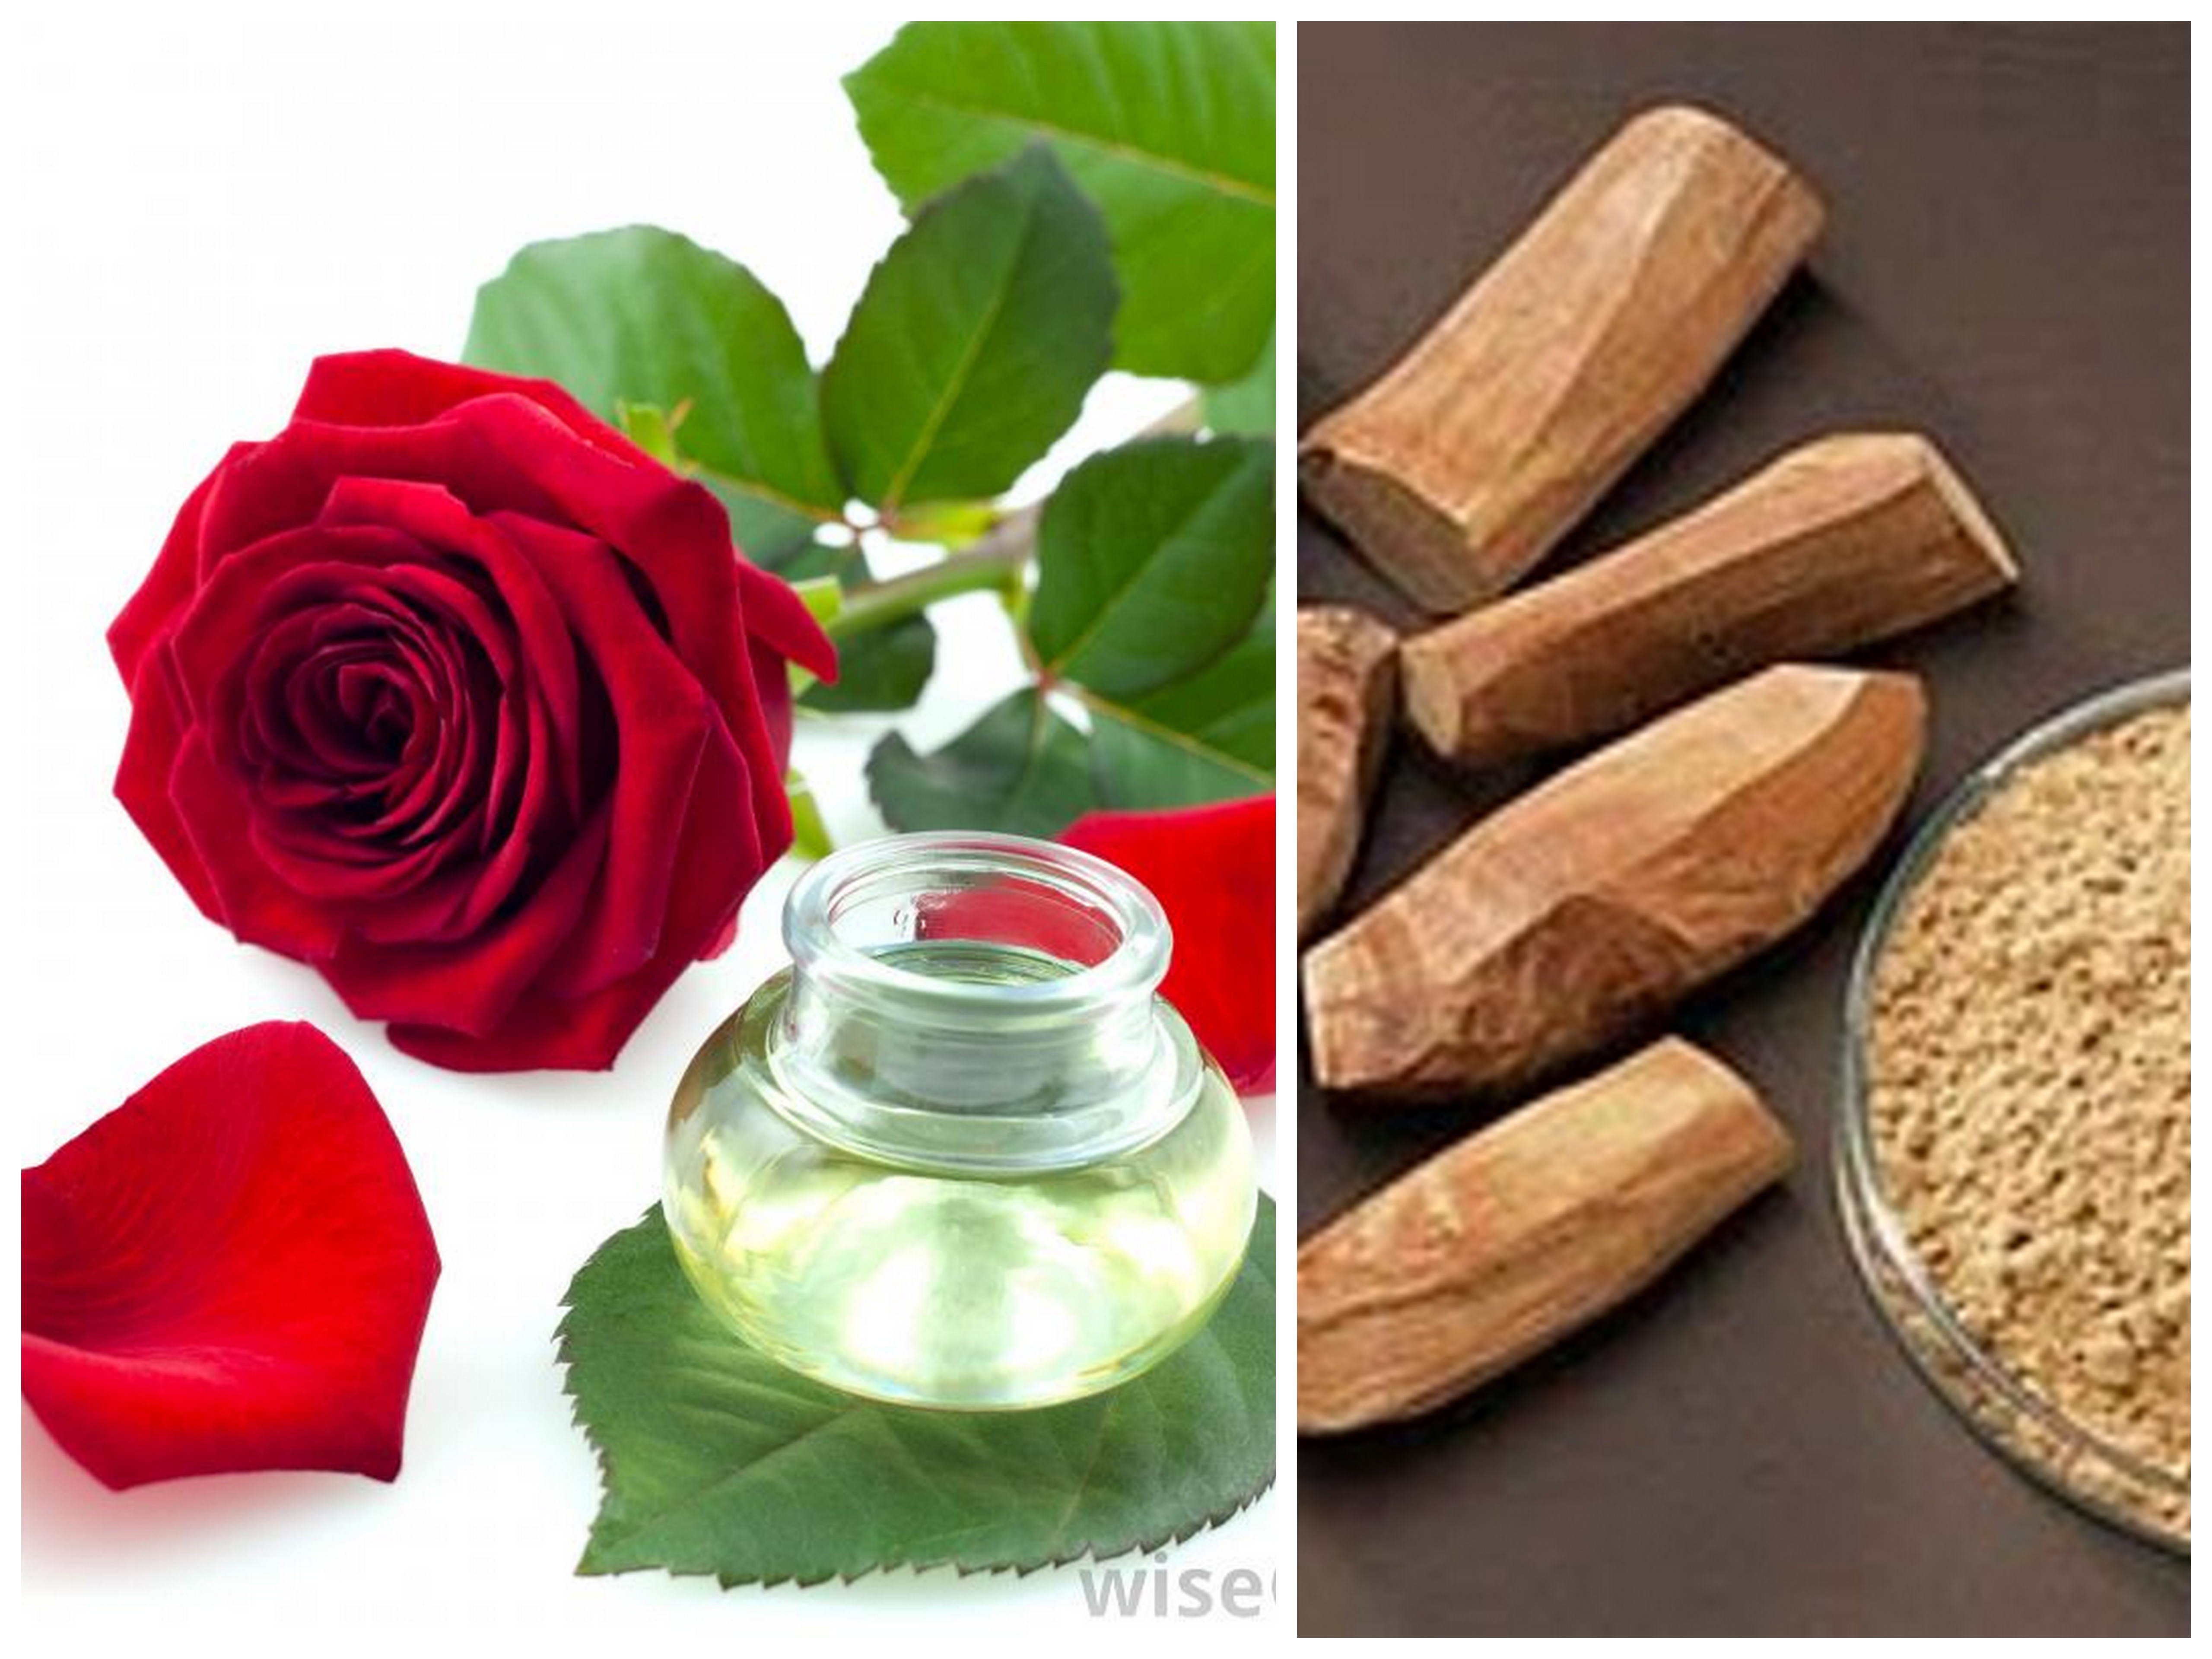 Rose-Water and Sandalwood